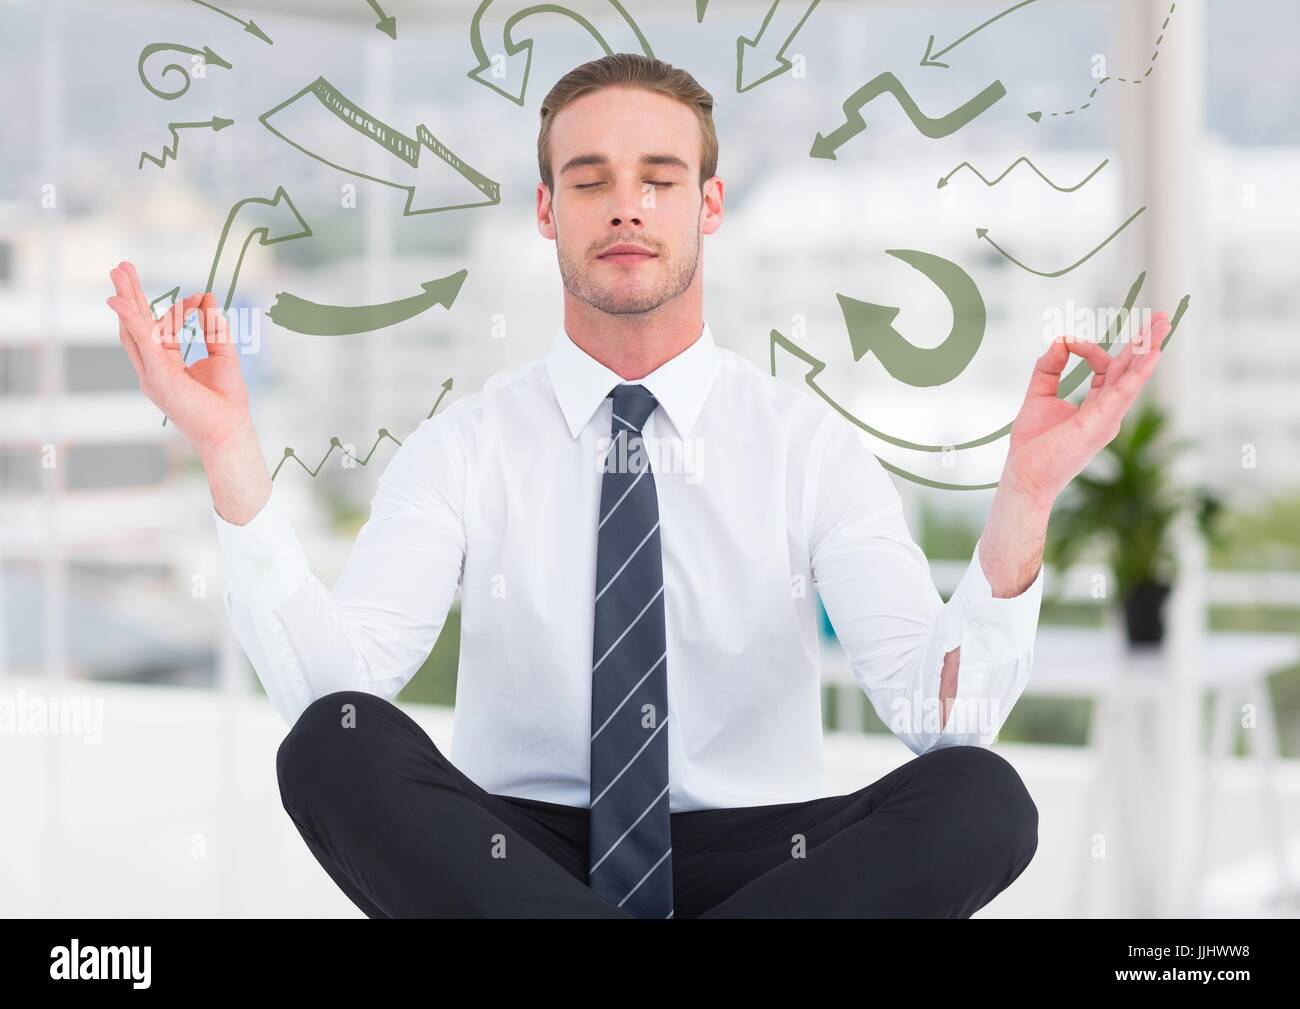 Business man meditating in blurry white office surrounded by 3D green arrow doodles - Stock Image